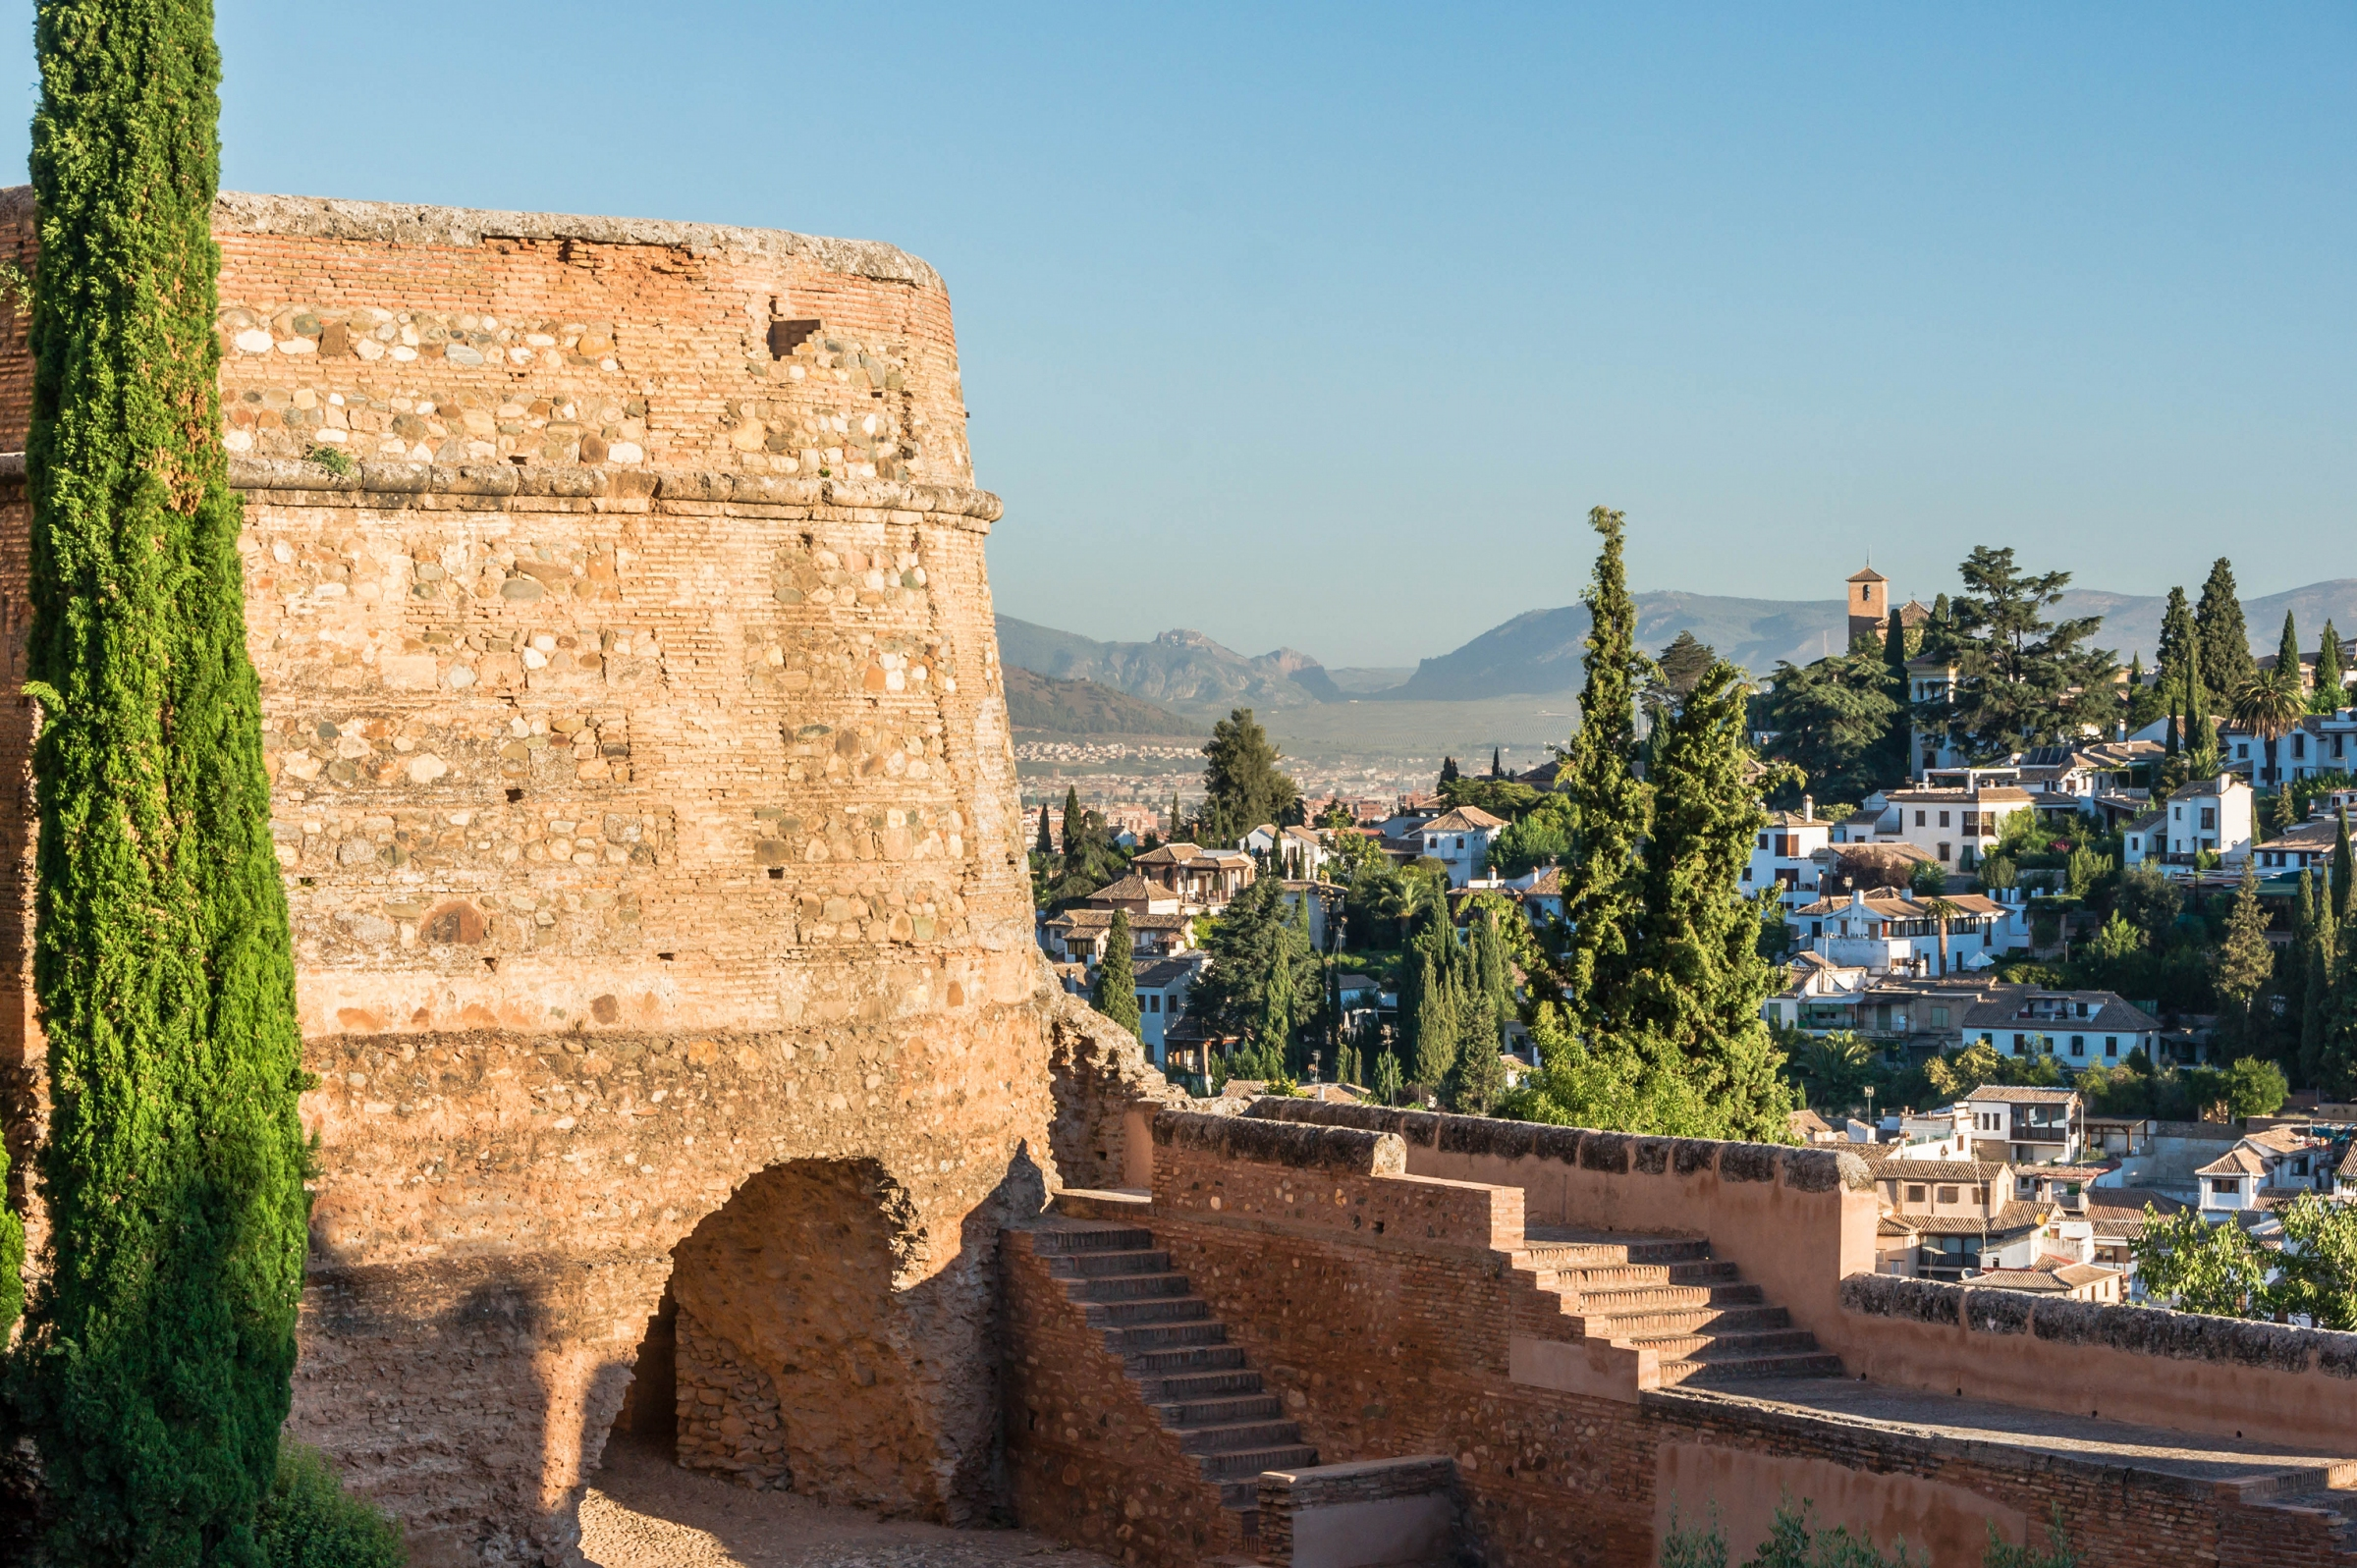 Free download high resolution image - free image free photo free stock image public domain picture -Alhambra at sunset, Granada, Spain